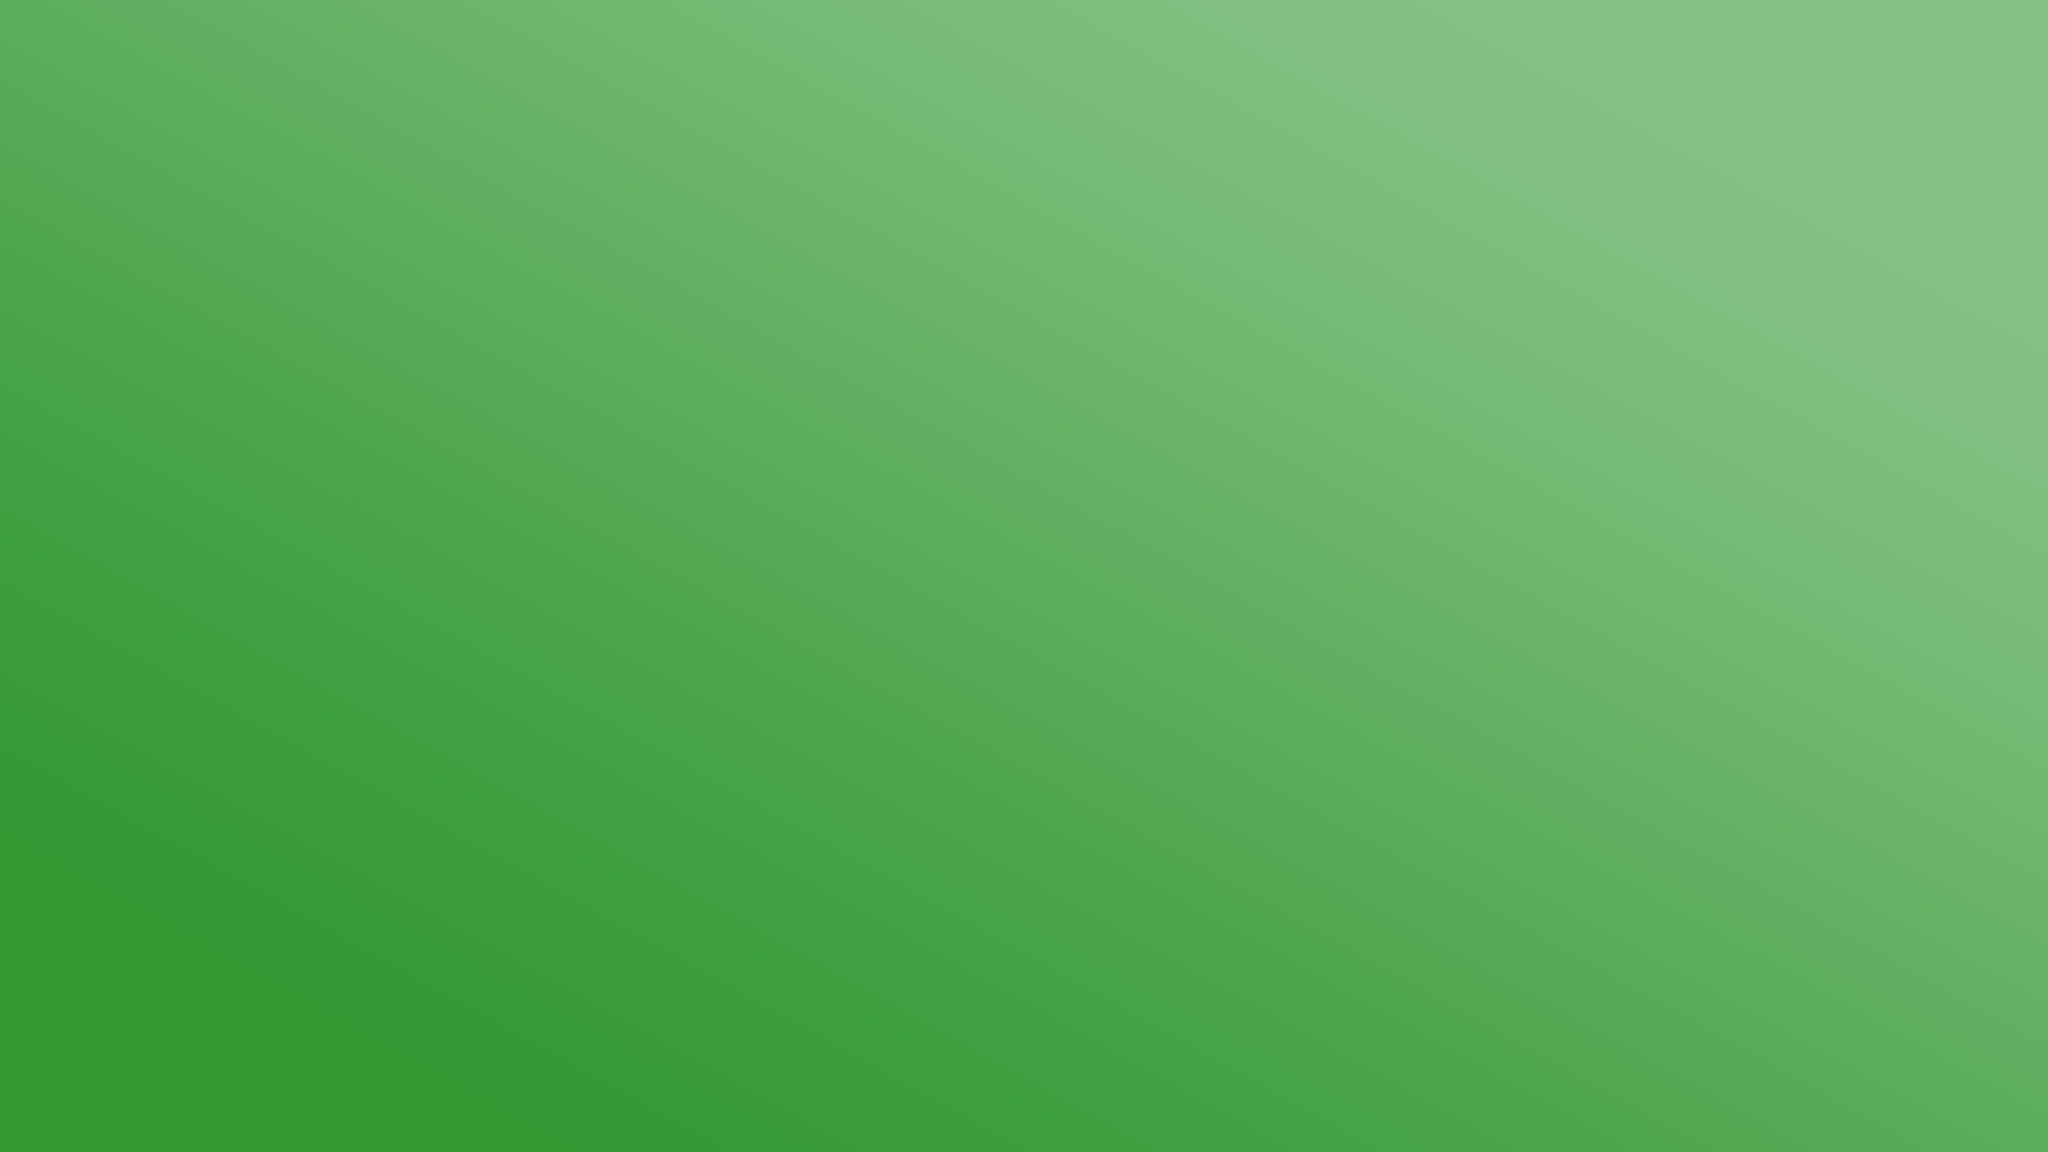 Preview wallpaper green, light, solid, paint 2048×1152